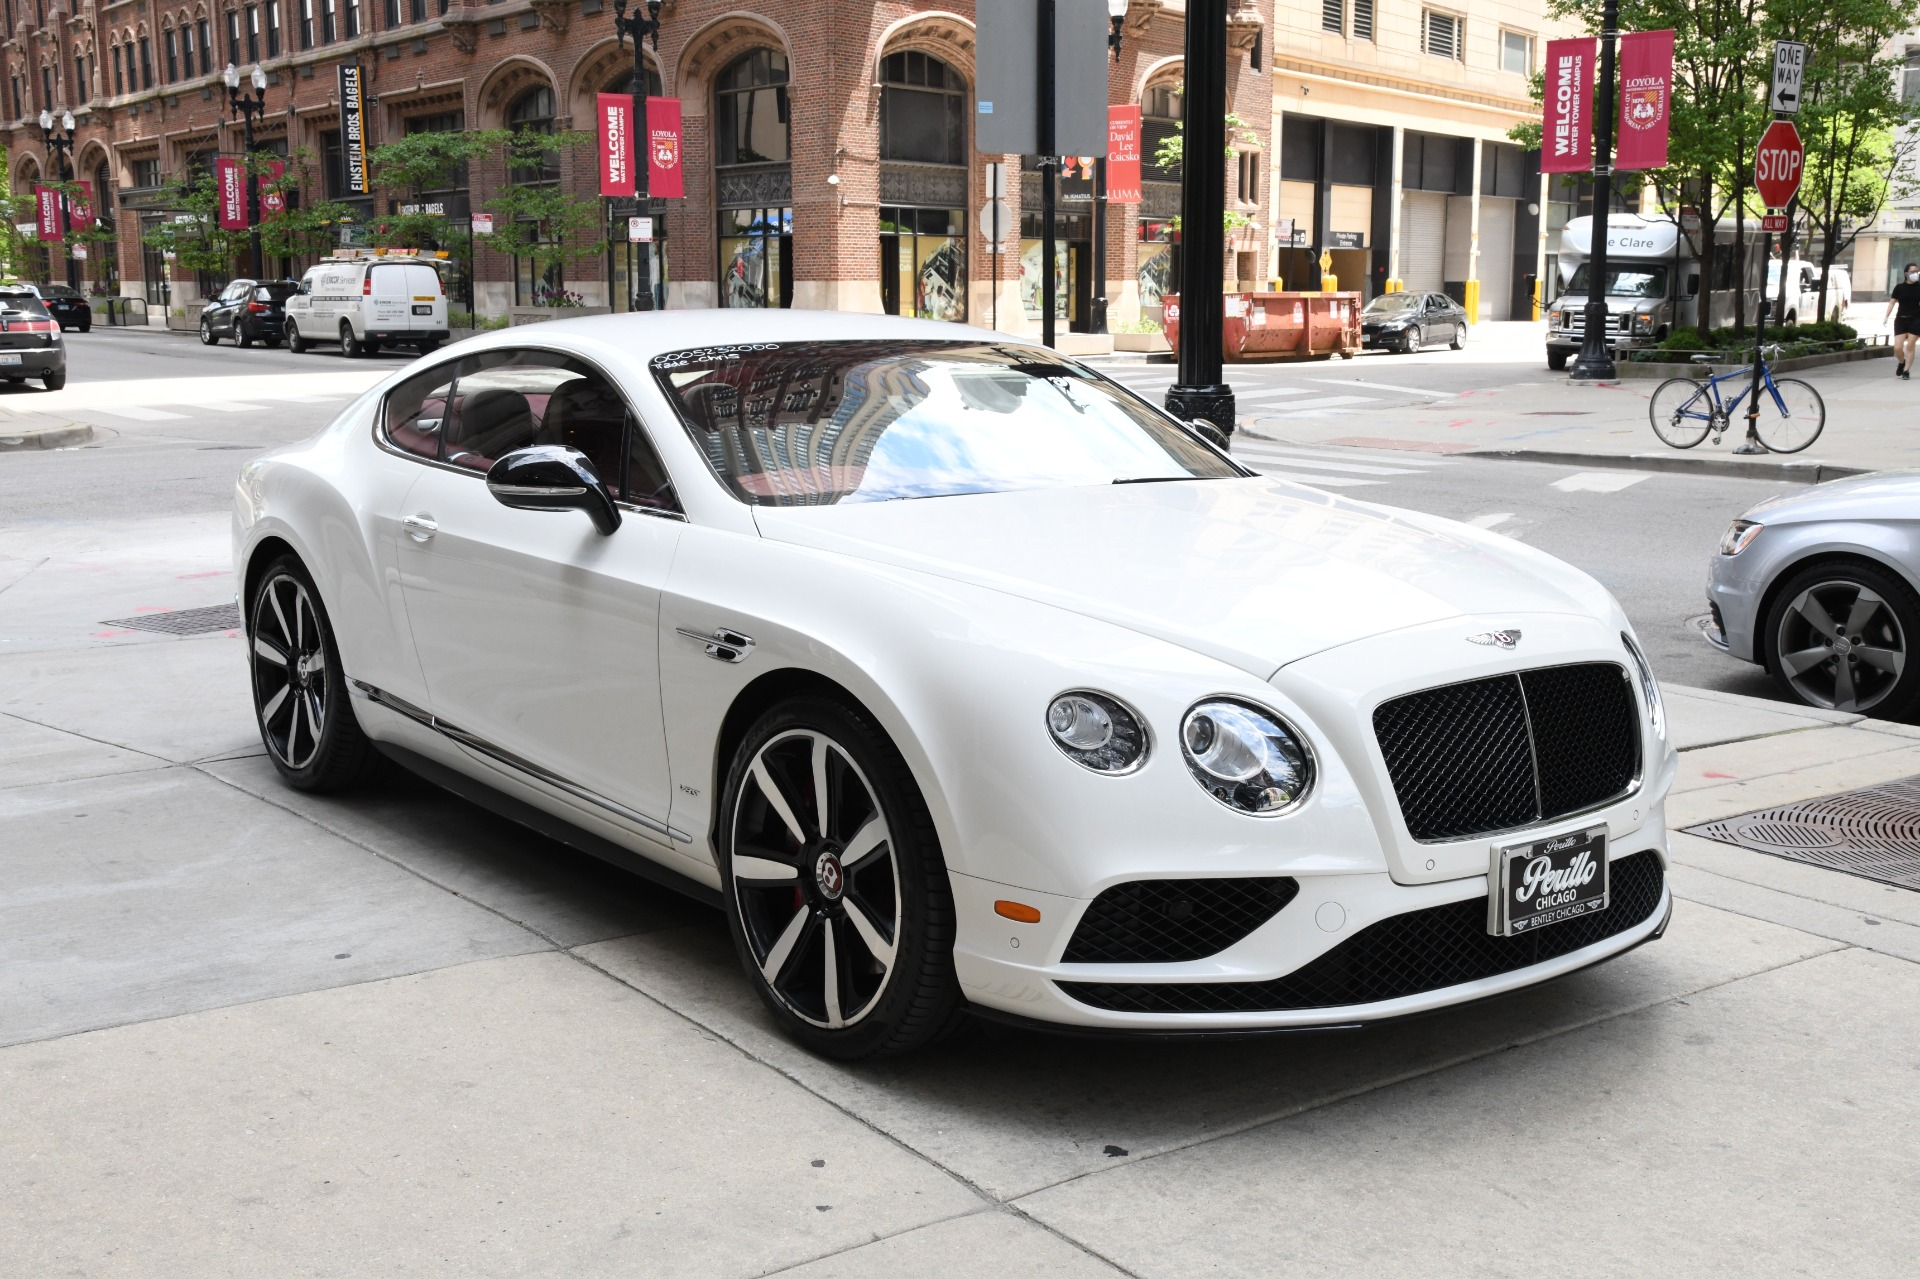 2017 bentley continental gt v8 s stock b838 for sale near chicago il il bentley dealer. Black Bedroom Furniture Sets. Home Design Ideas